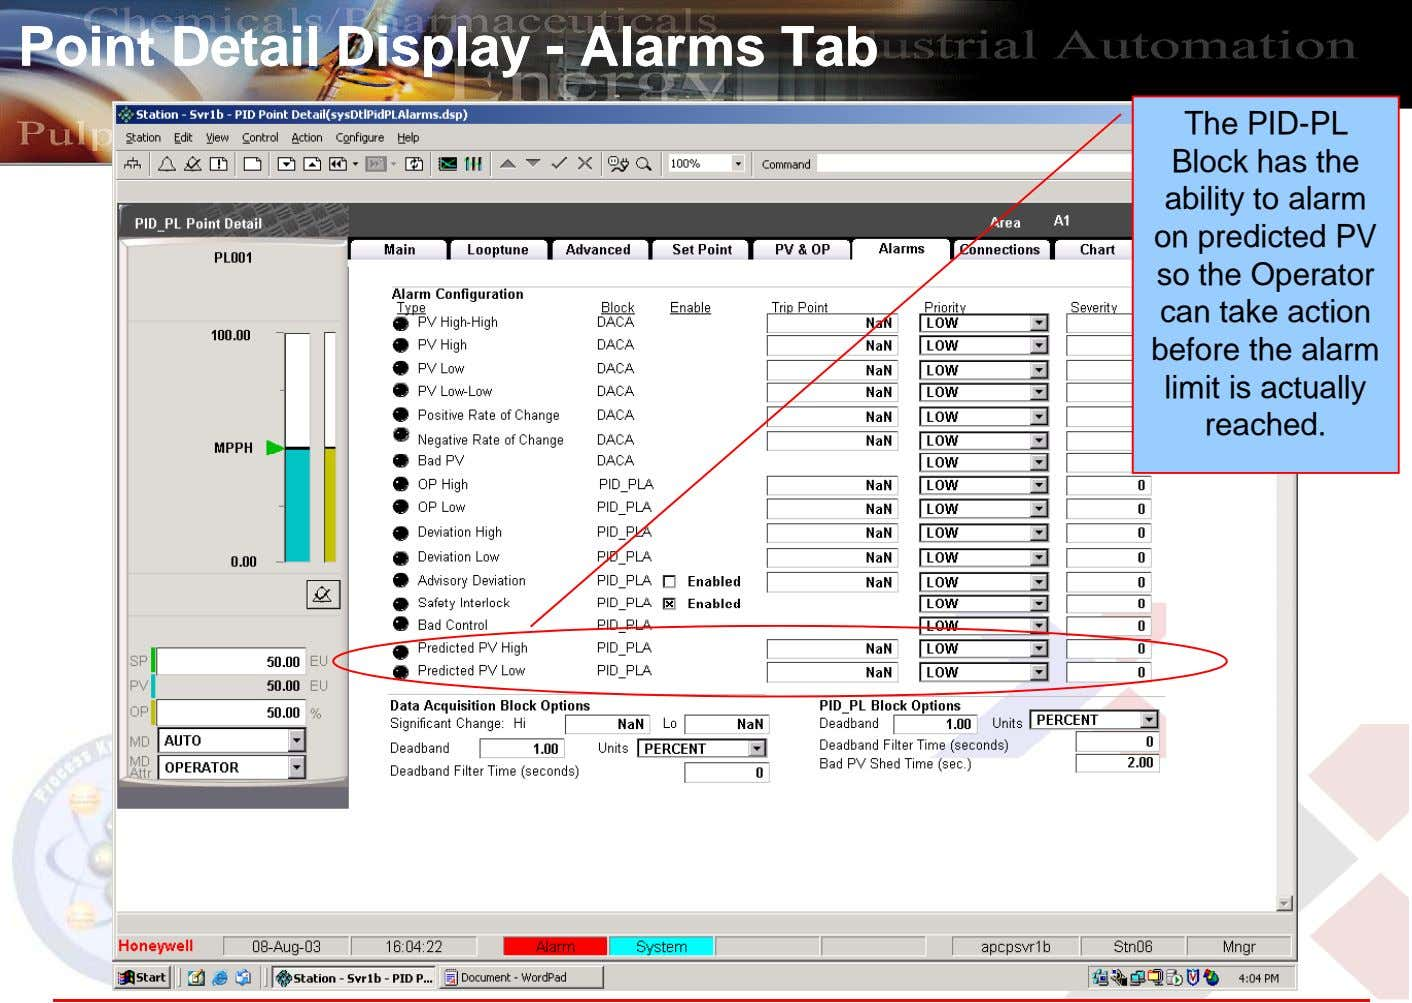 PointPoint DetailDetail DisplayDisplay -- AlarmsAlarms TabTab The PID-PL Block has the ability to alarm on